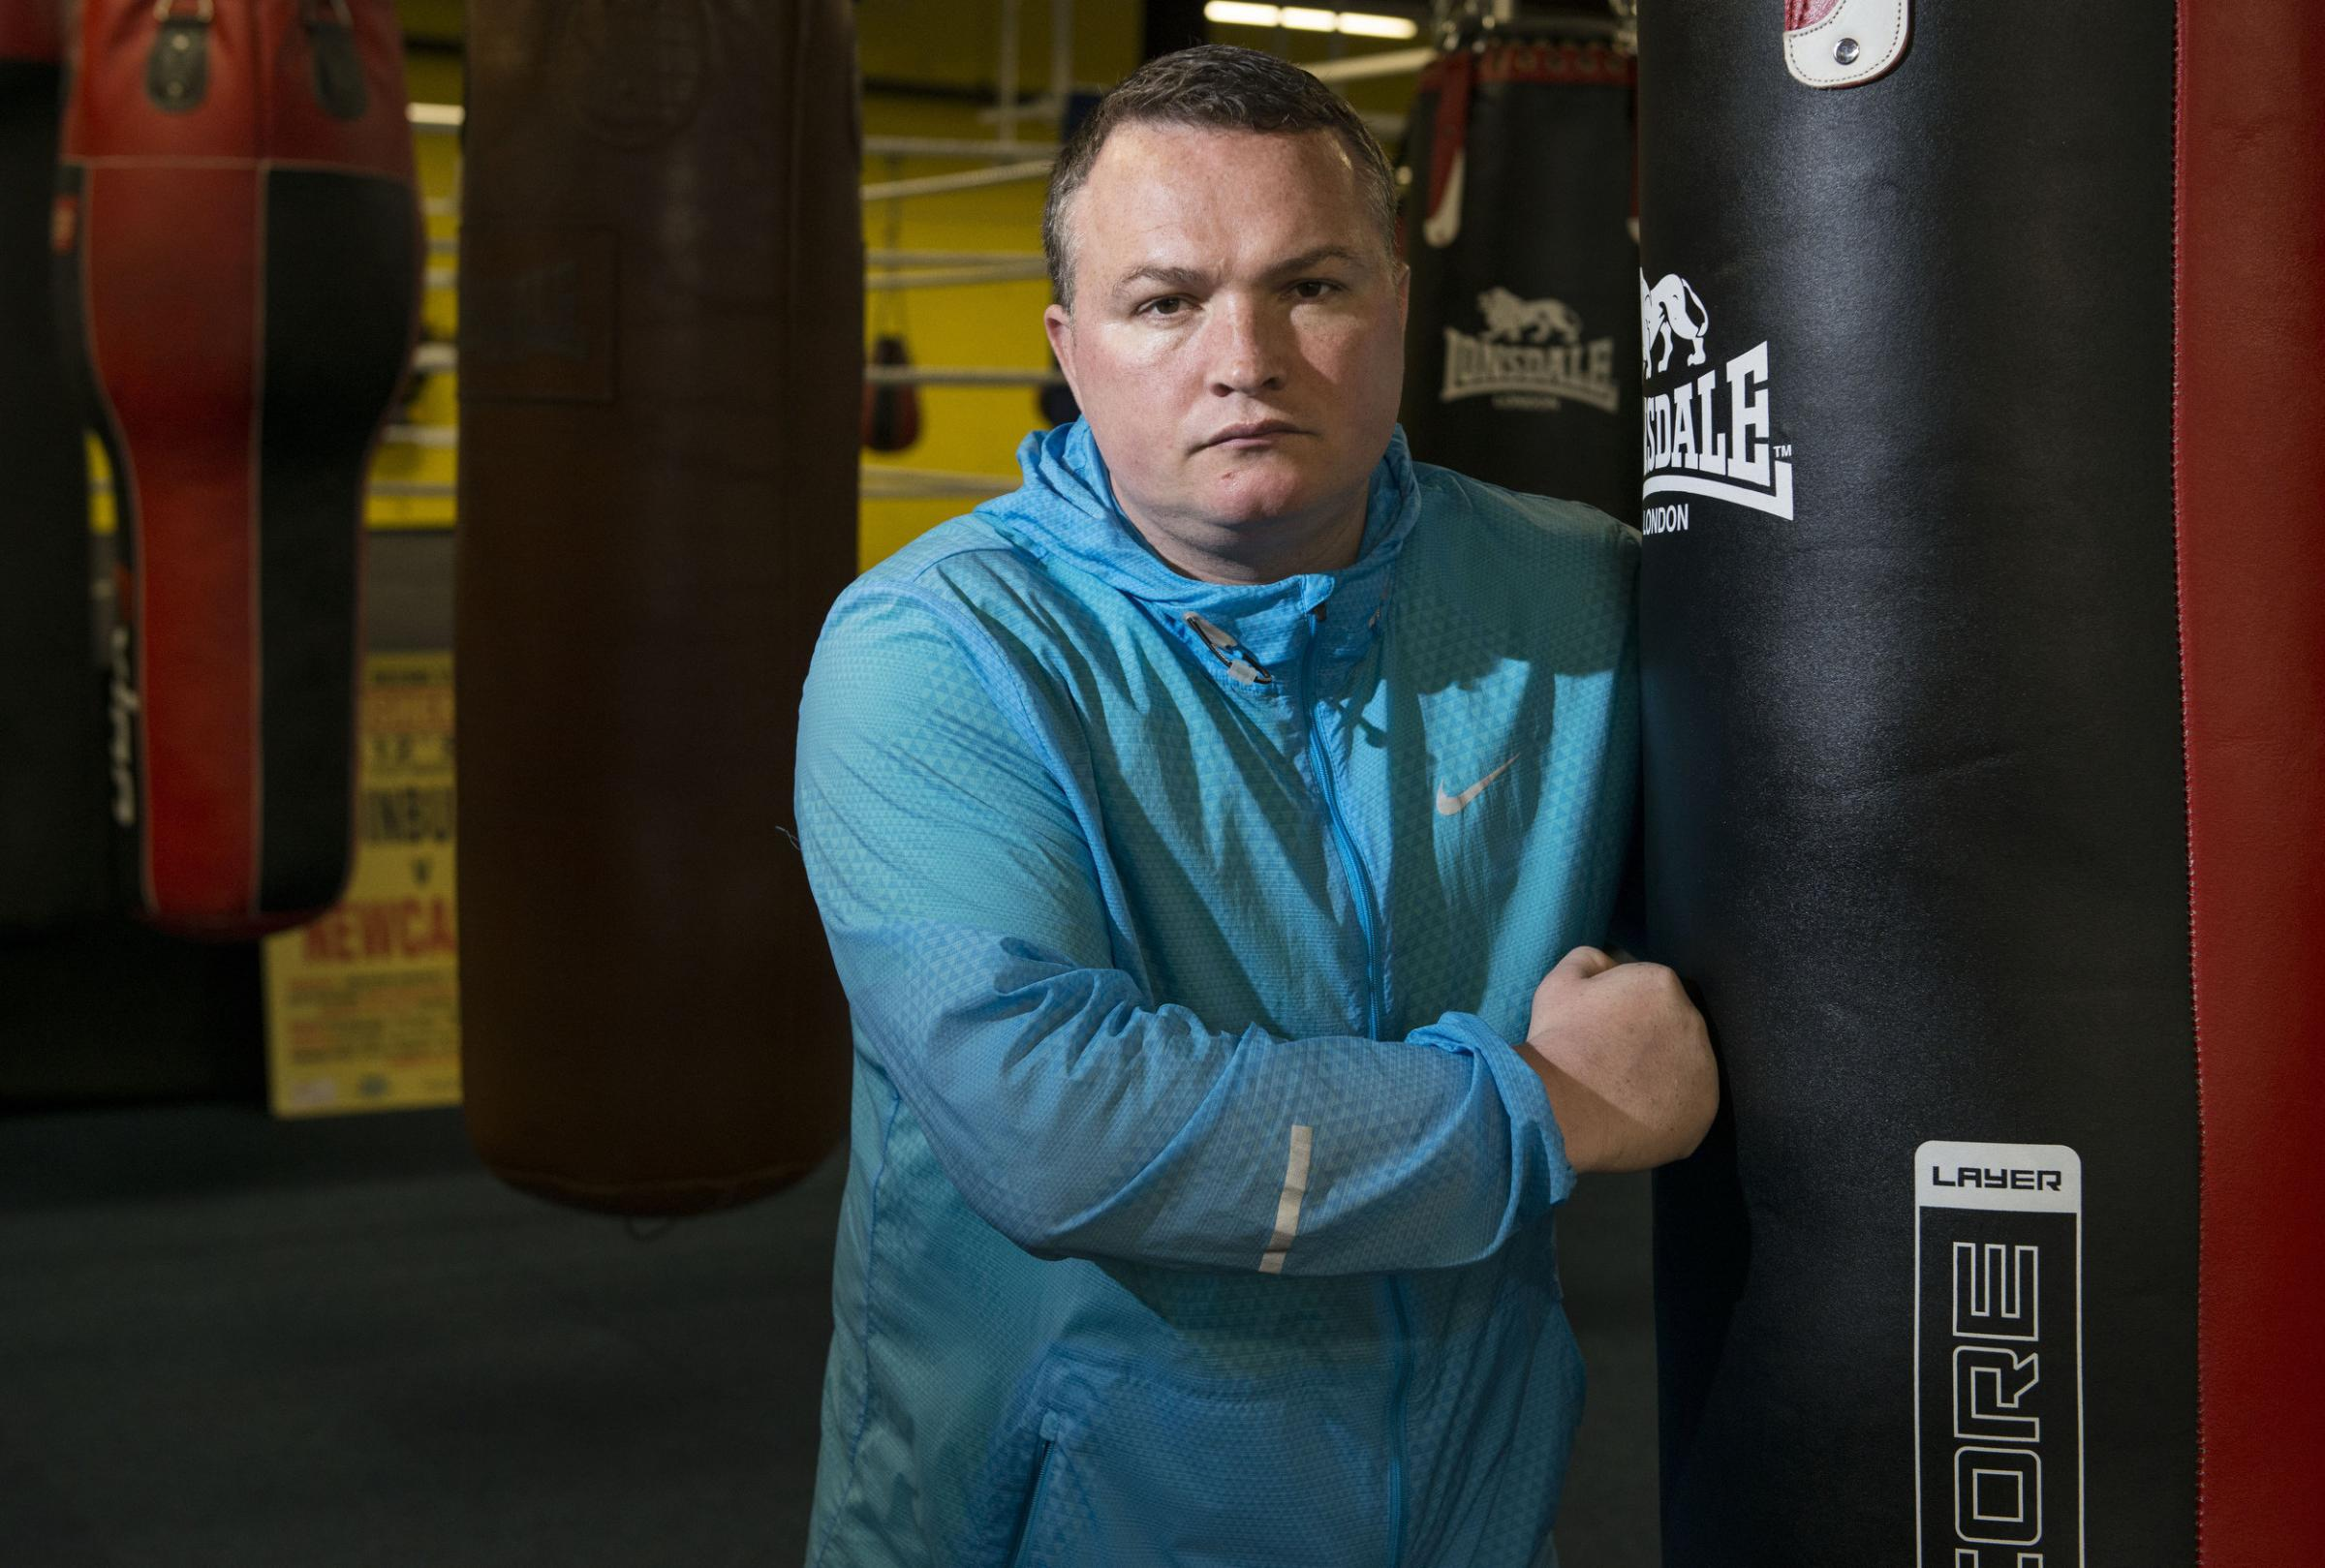 Bradley Welsh was a former boxing champion